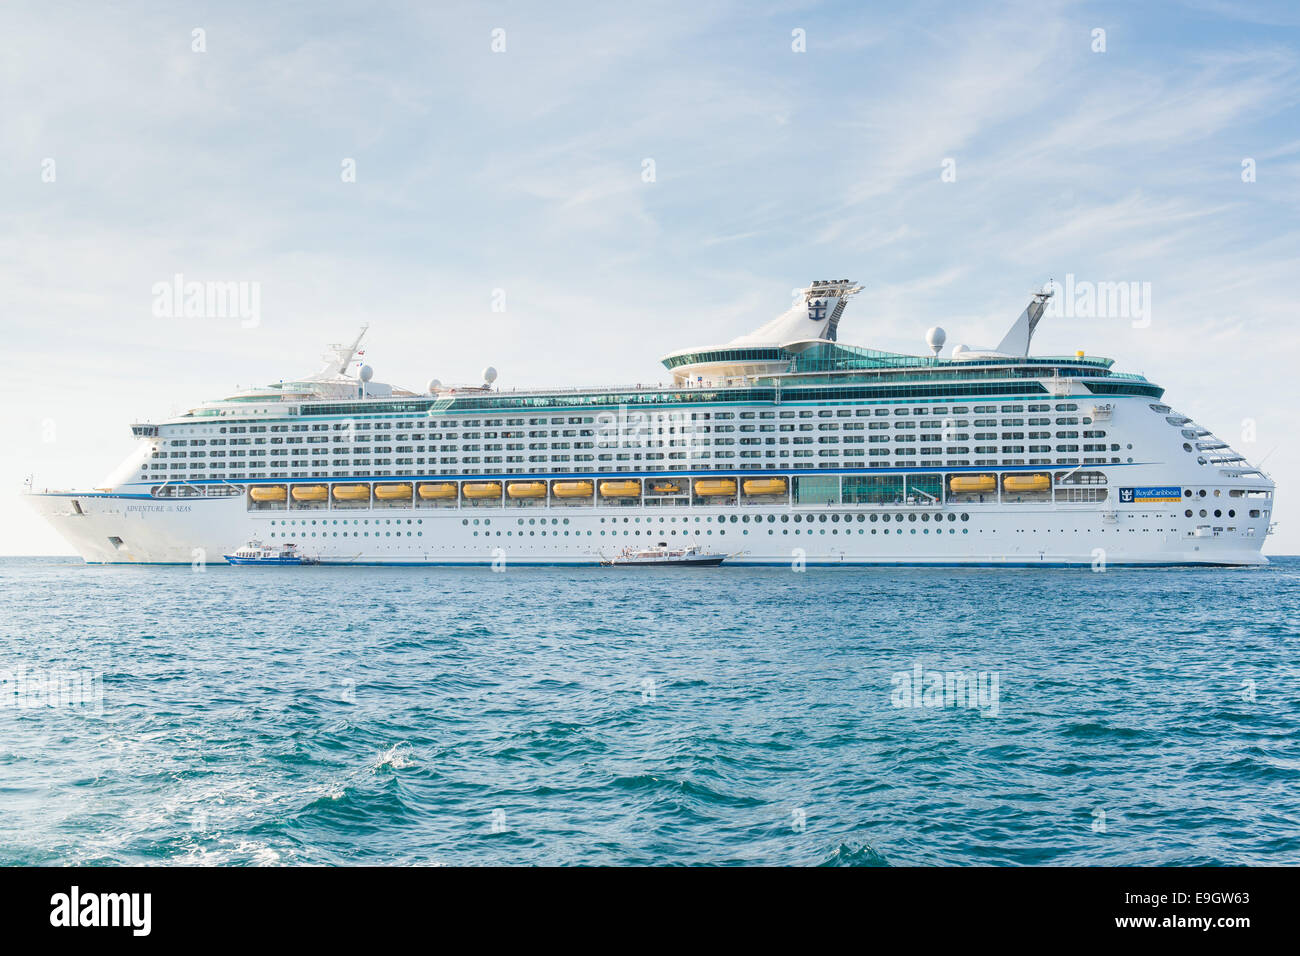 Royal Caribbean International cruise ship Adventure Of The Seas in Cannes, France - Stock Image